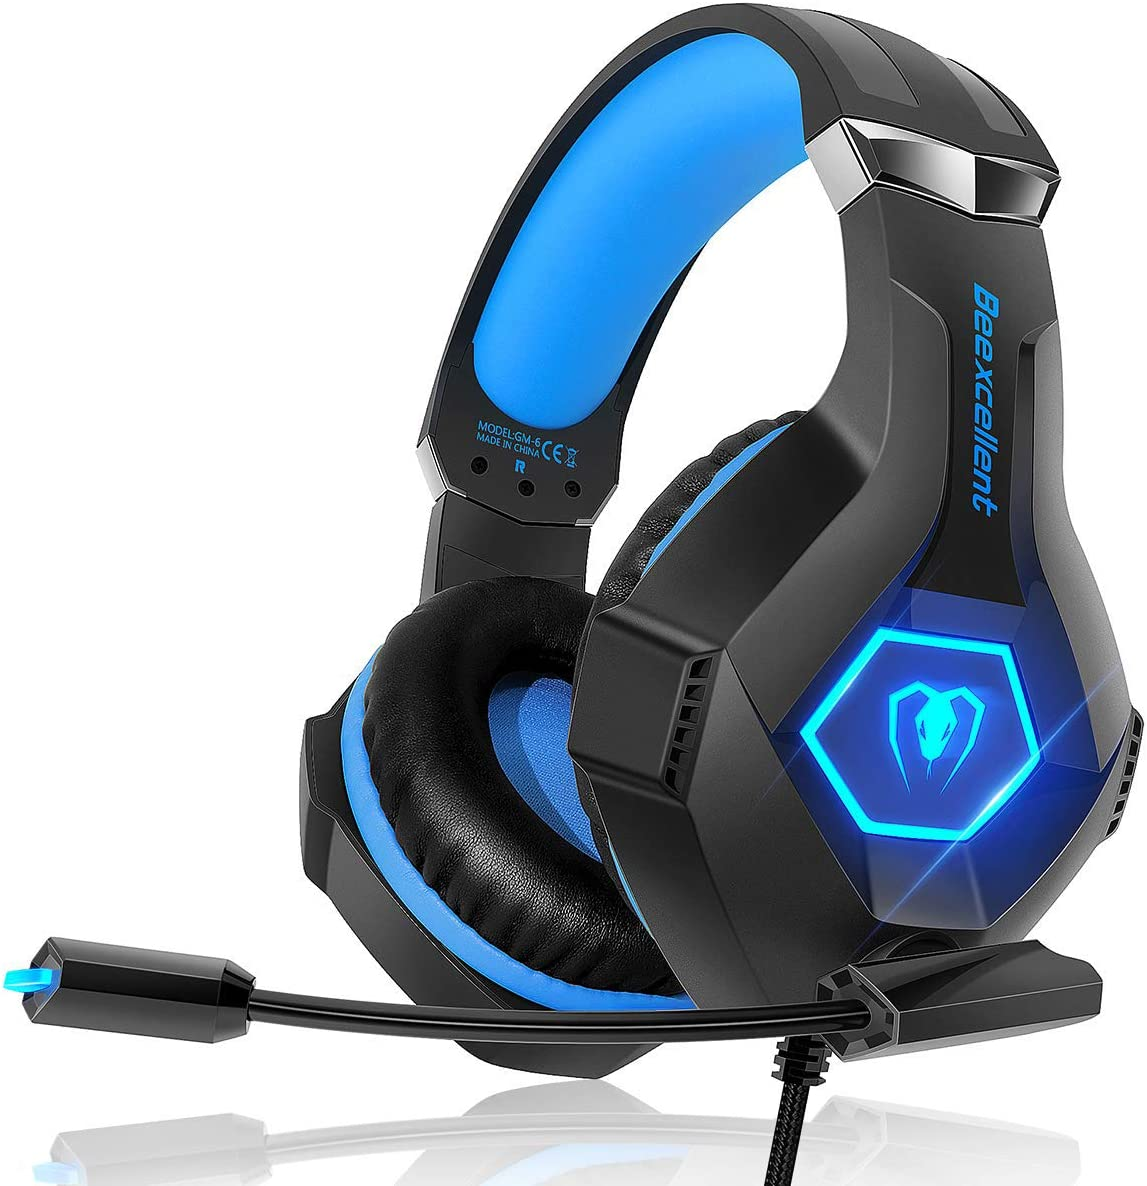 Gaming Headset for PS4 iKiKin Xbox One Headset with Mic Blue Stereo Surround Sound Noise Canceling Deep Bass LED Light Wired Over Ear Gaming Headphones for PC iPad Laptop